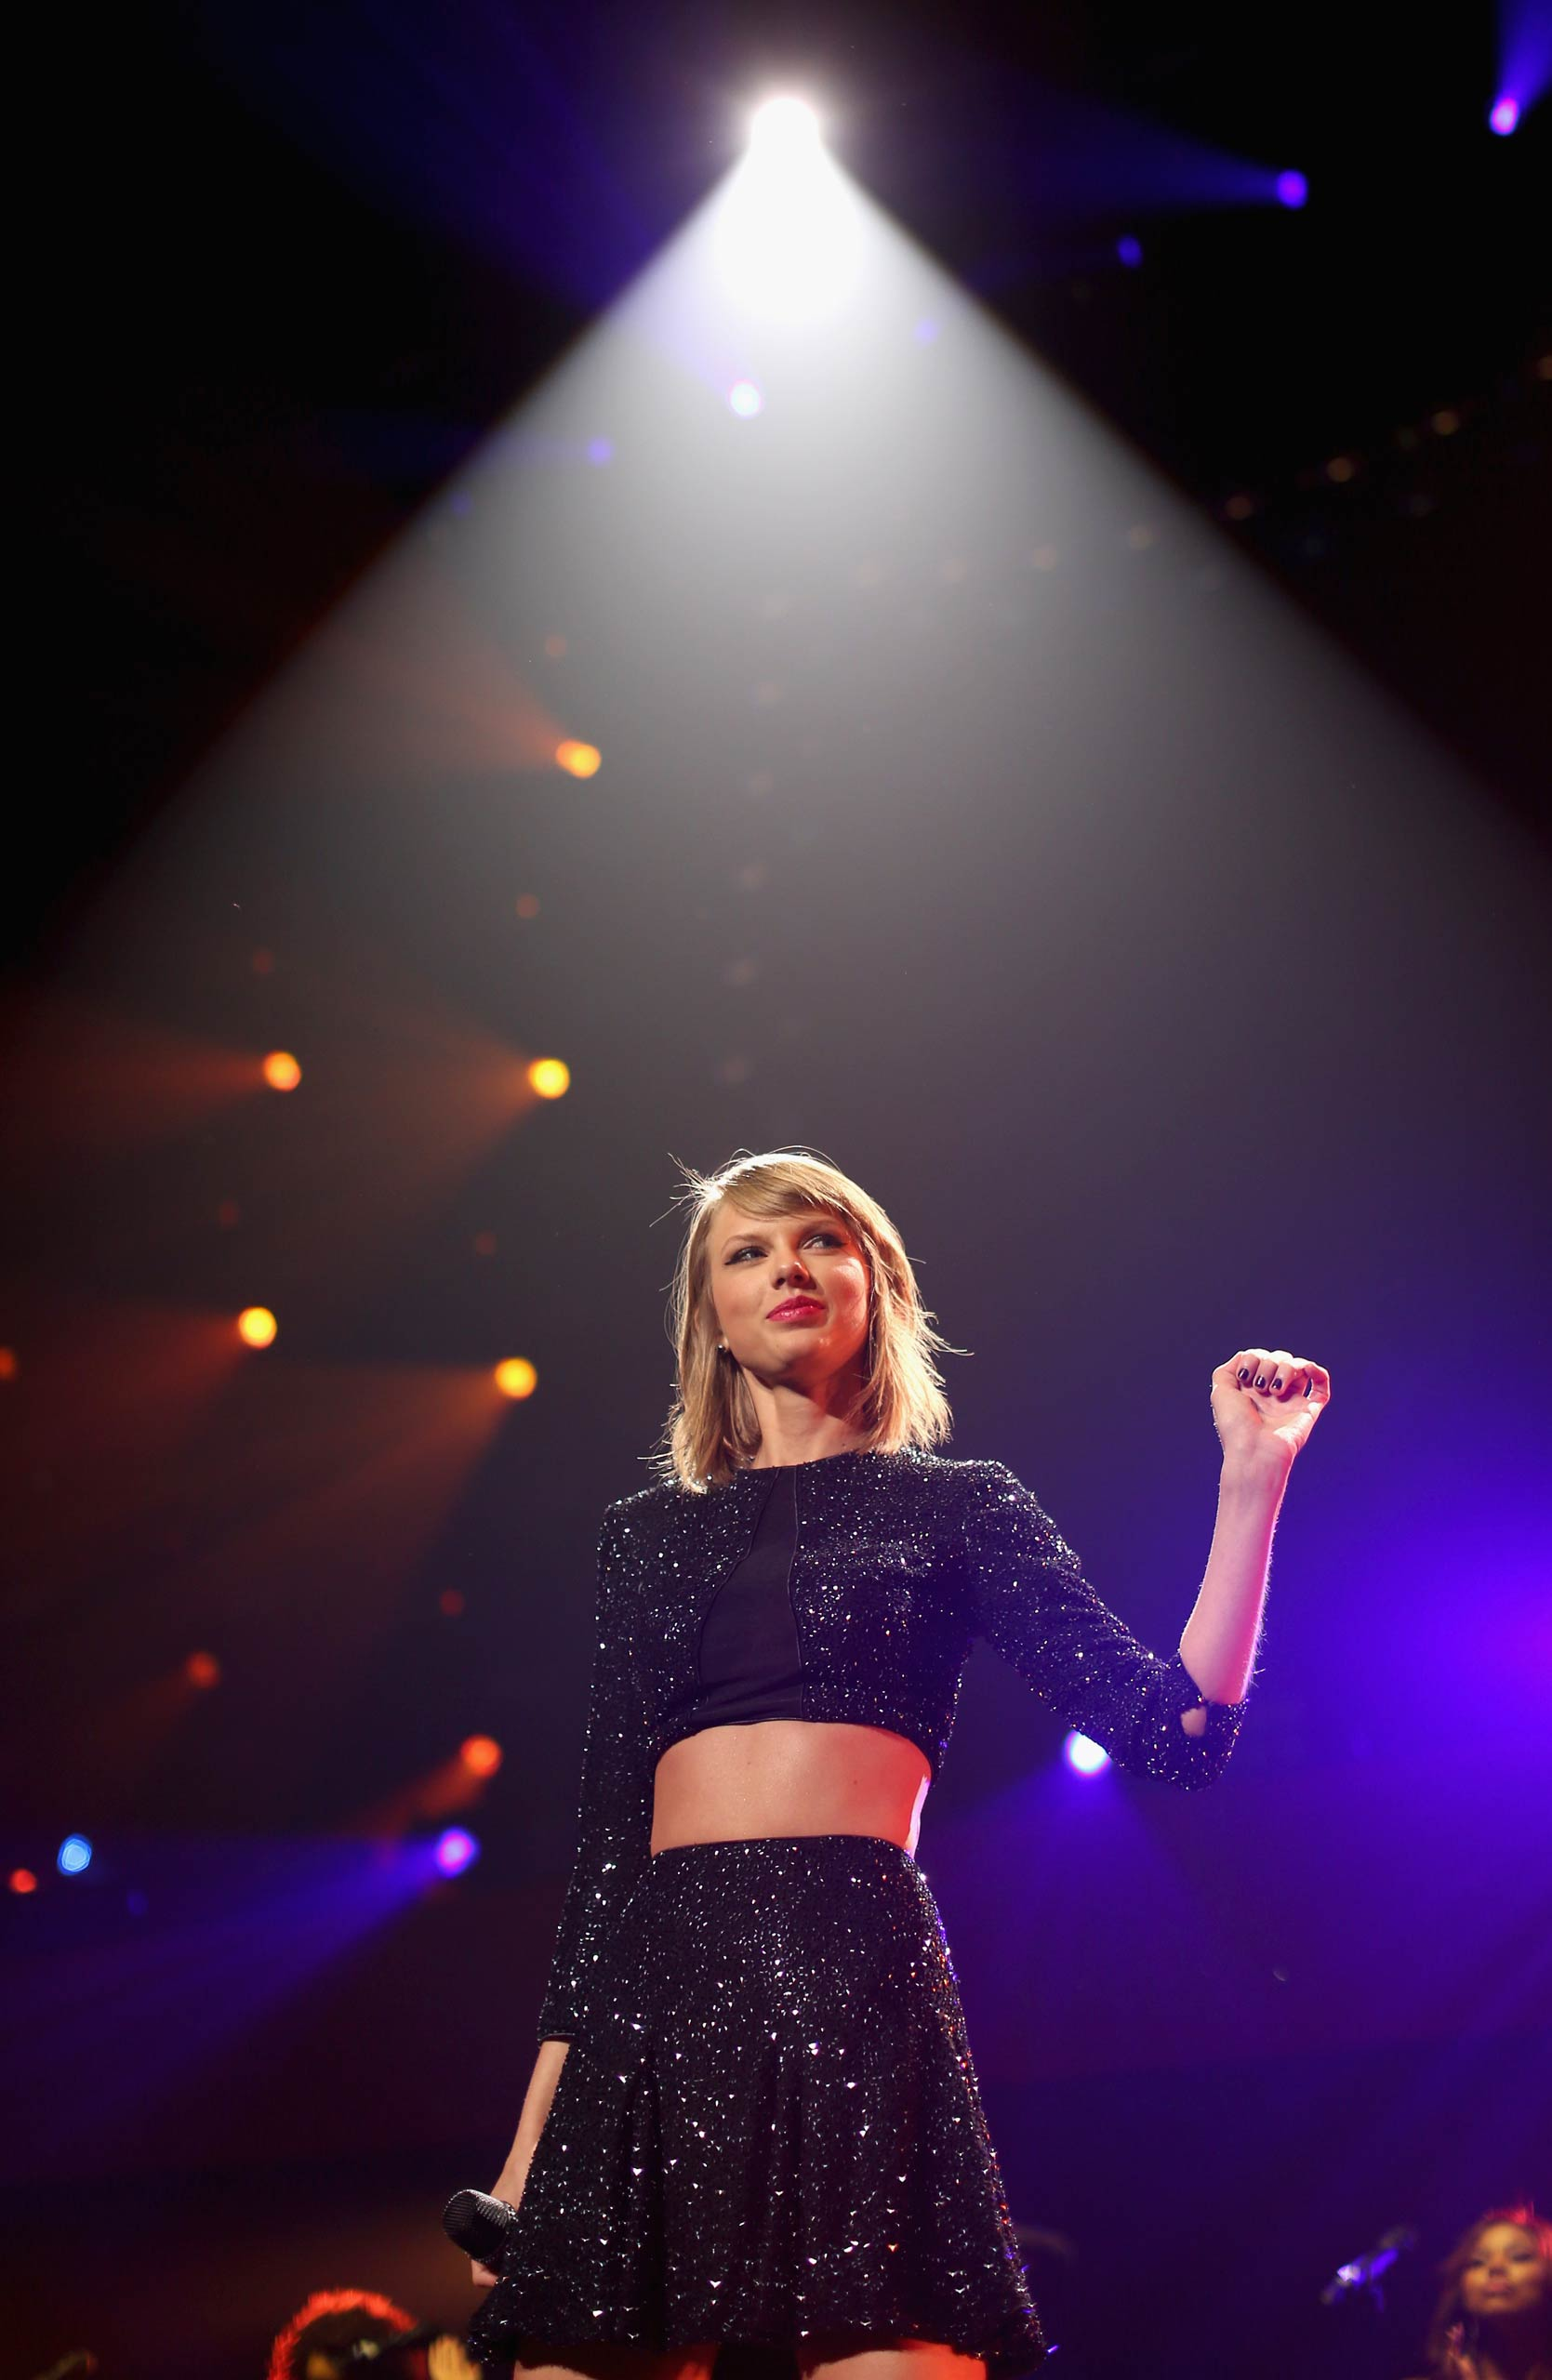 Taylor Swift performs onstage during KIIS FM's Jingle Ball 2014 at Staples Center on December 5, 2014 in Los Angeles, Ca.